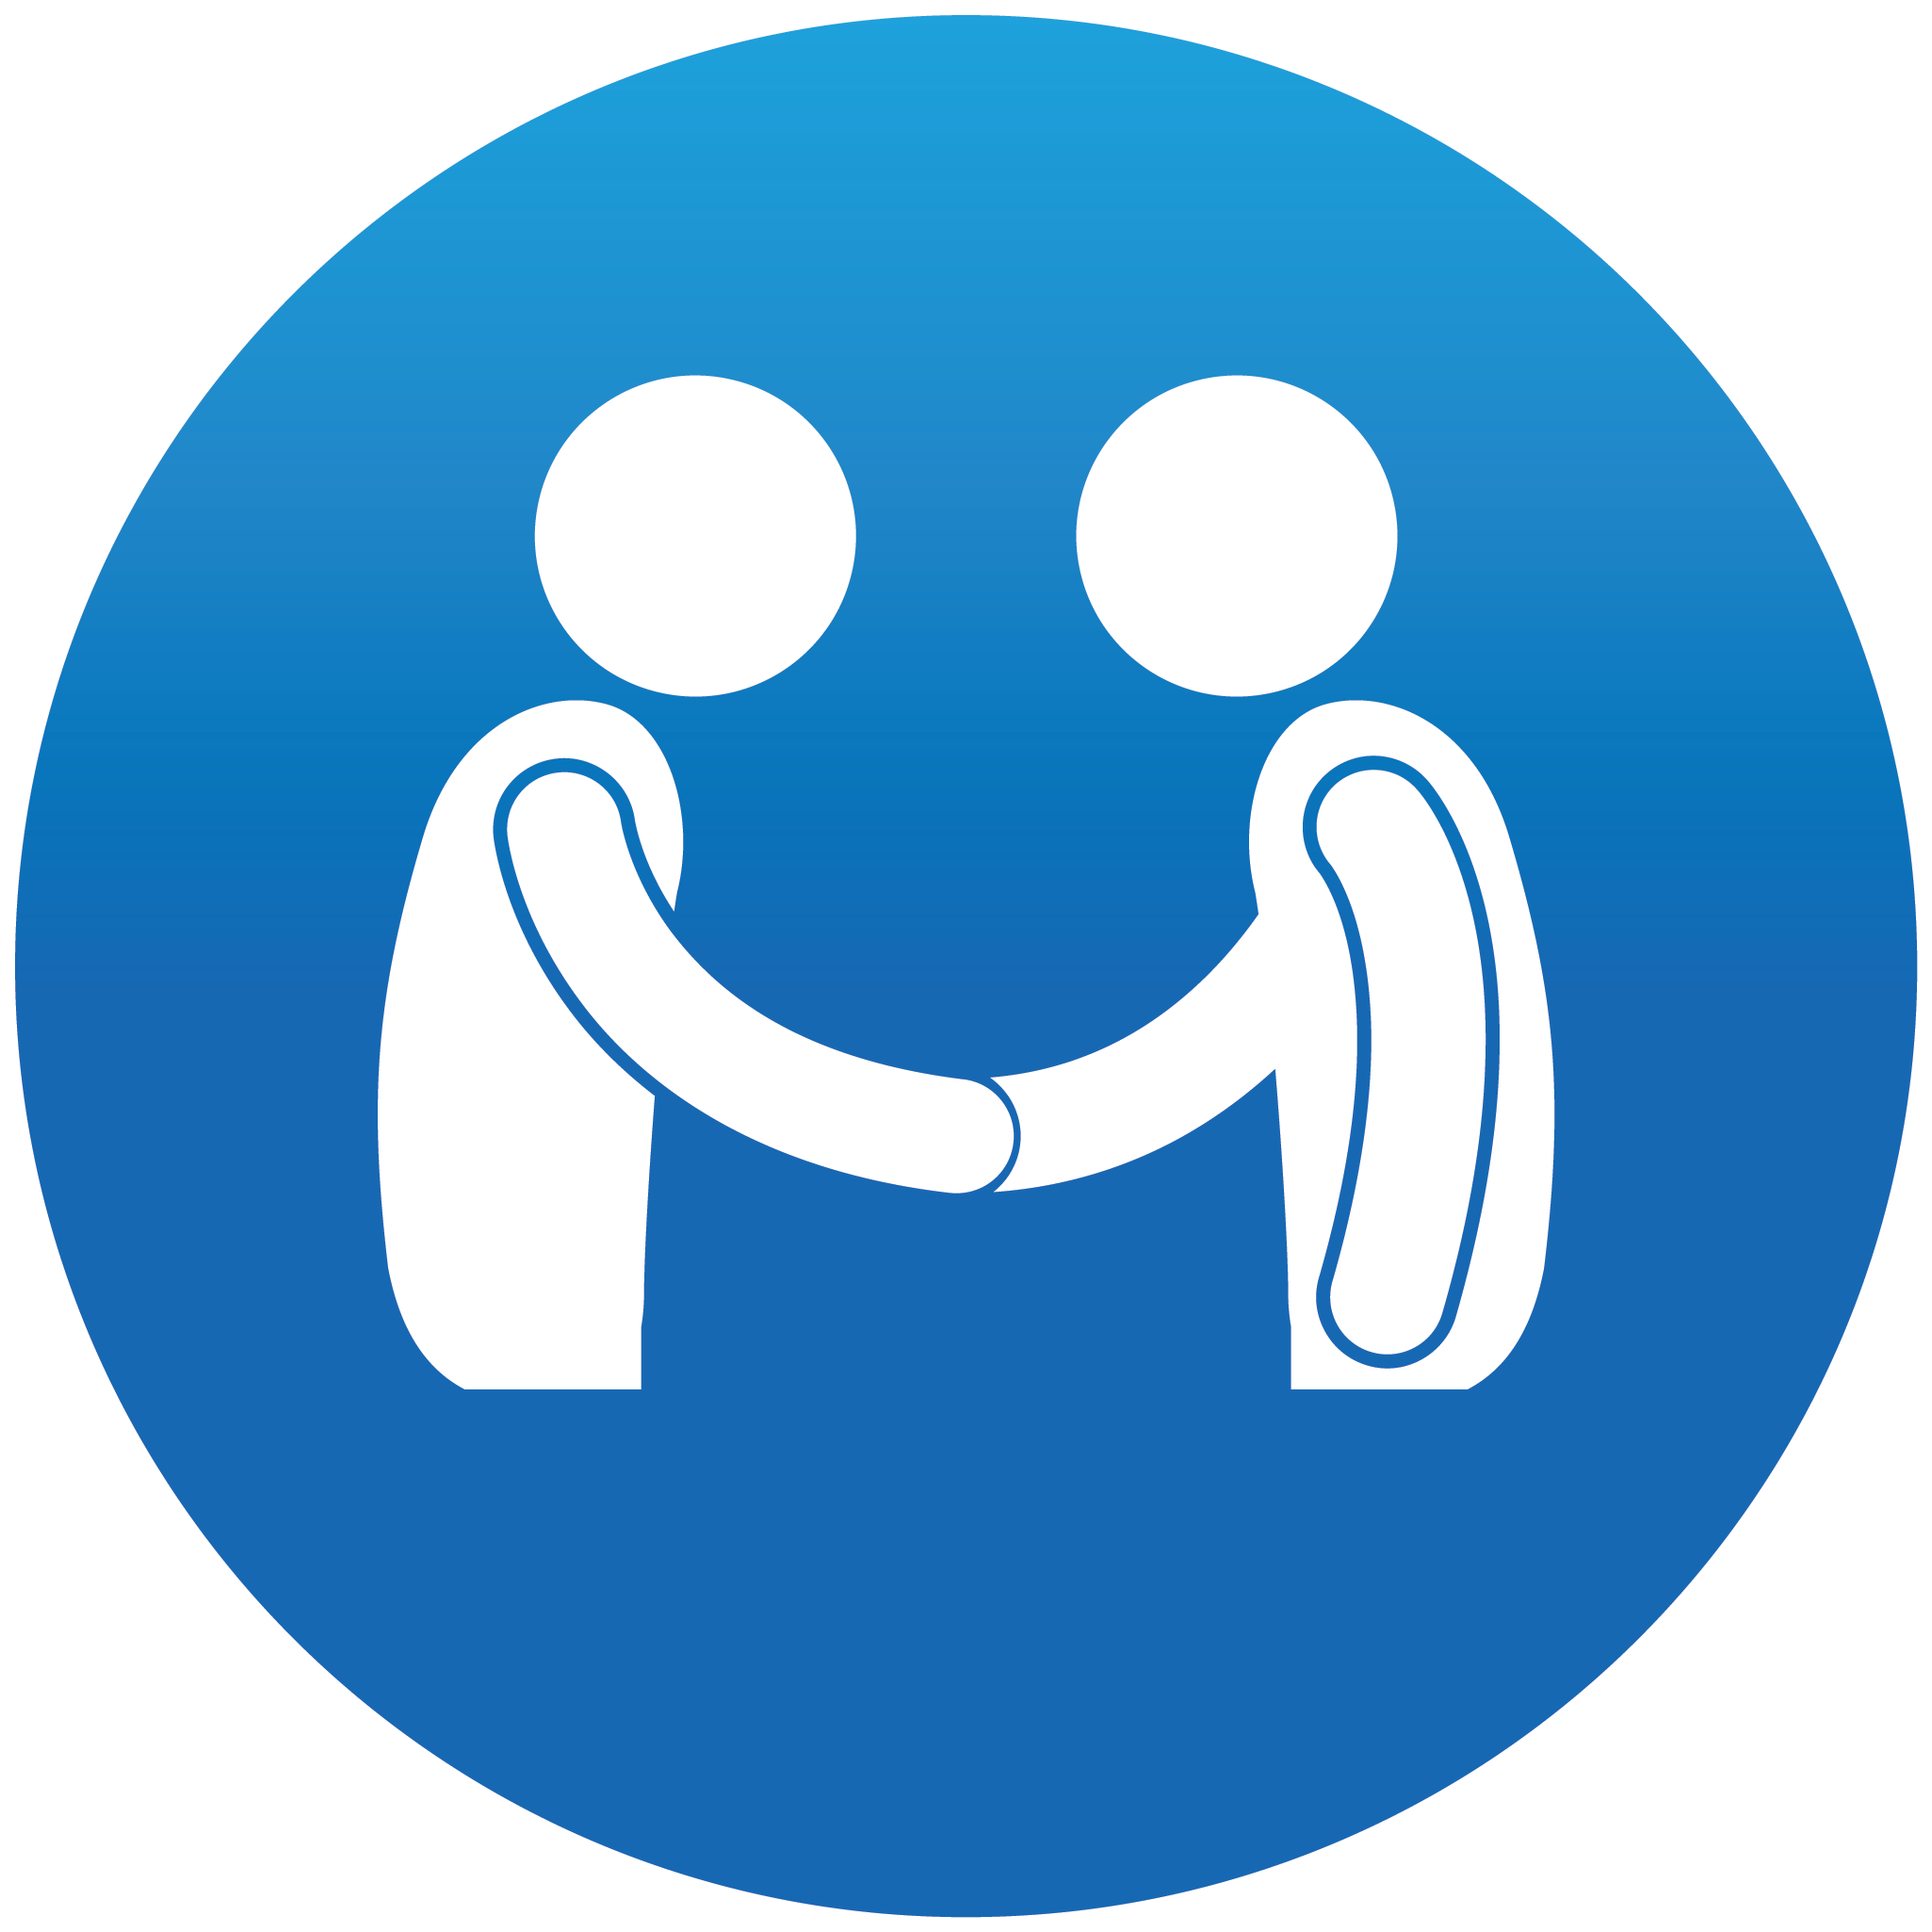 Handshake Shaking Hands Icon